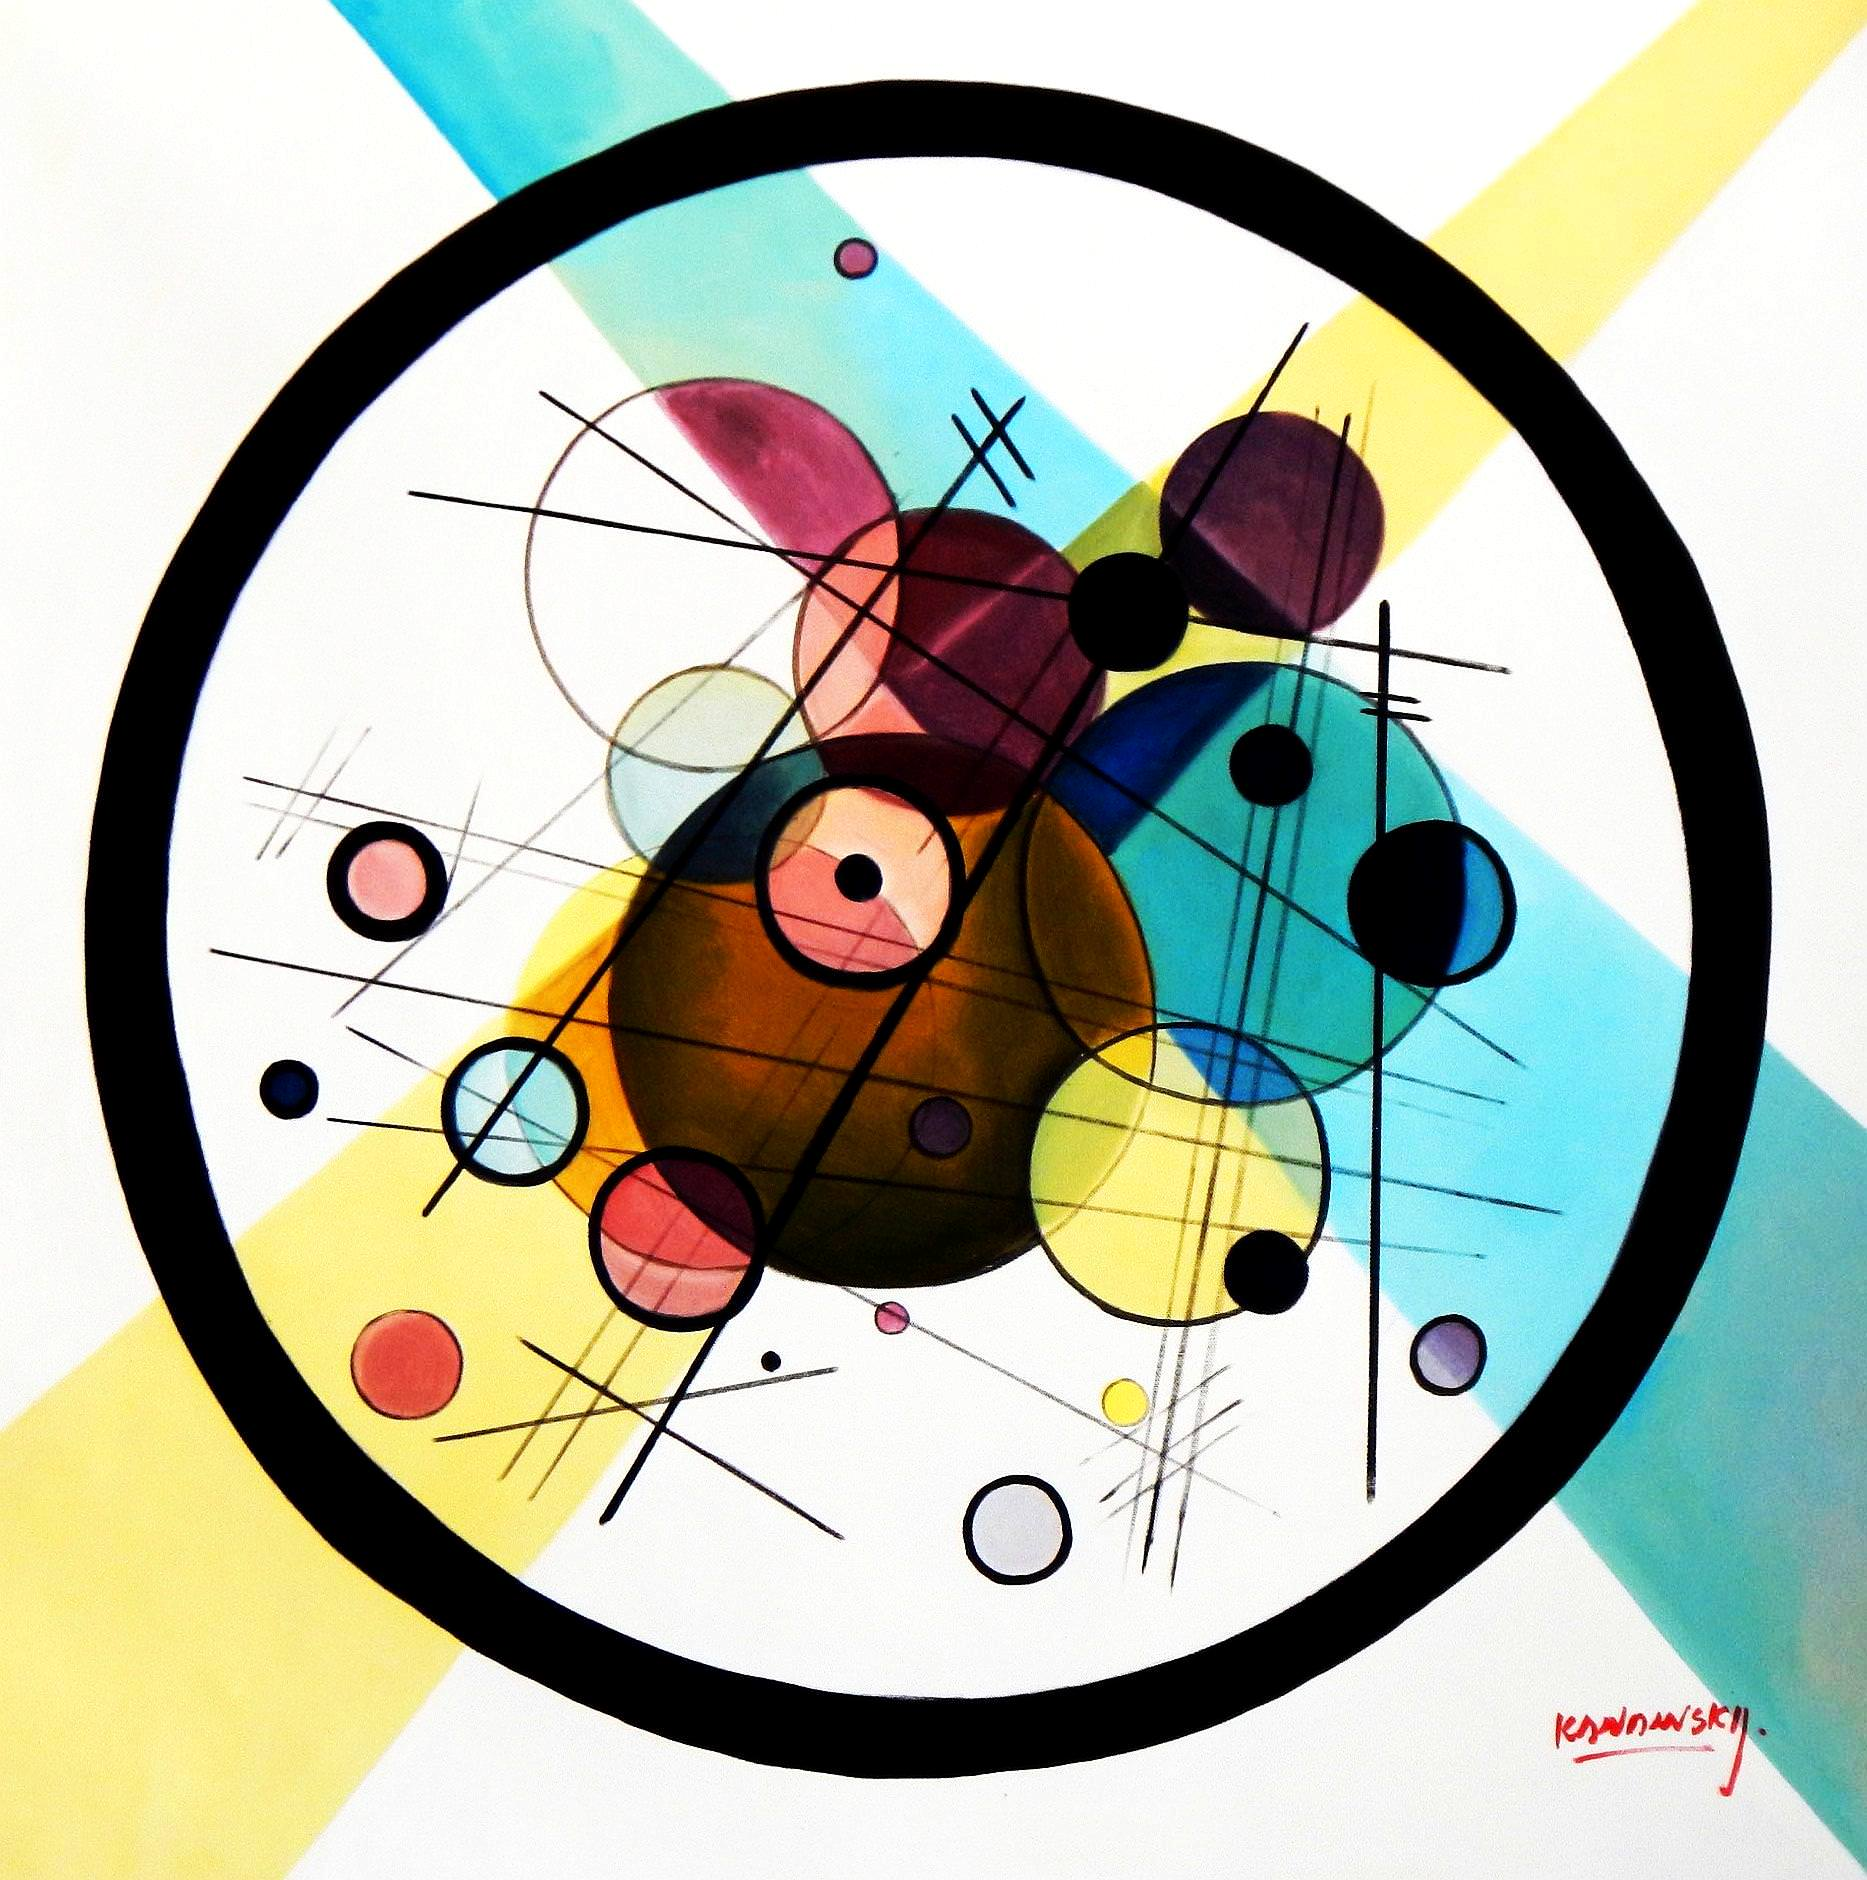 Homage to Kandinsky - Variation der Querlinie g94007 80x80cm exquisites Gemälde